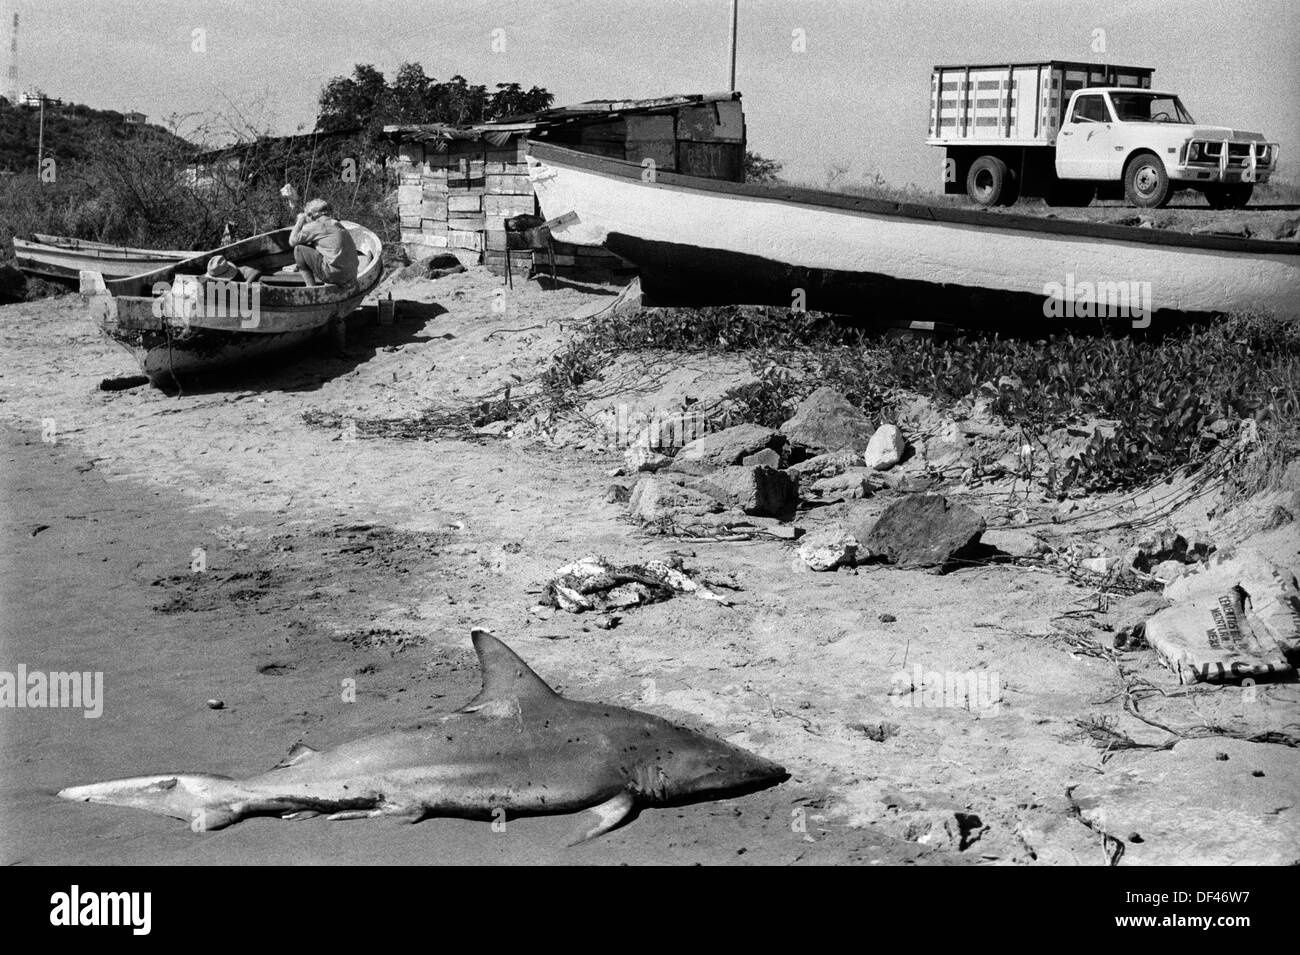 Shark beached washed up and dead Mazatlan Mexico 1973.  1970s HOMER SYKES - Stock Image